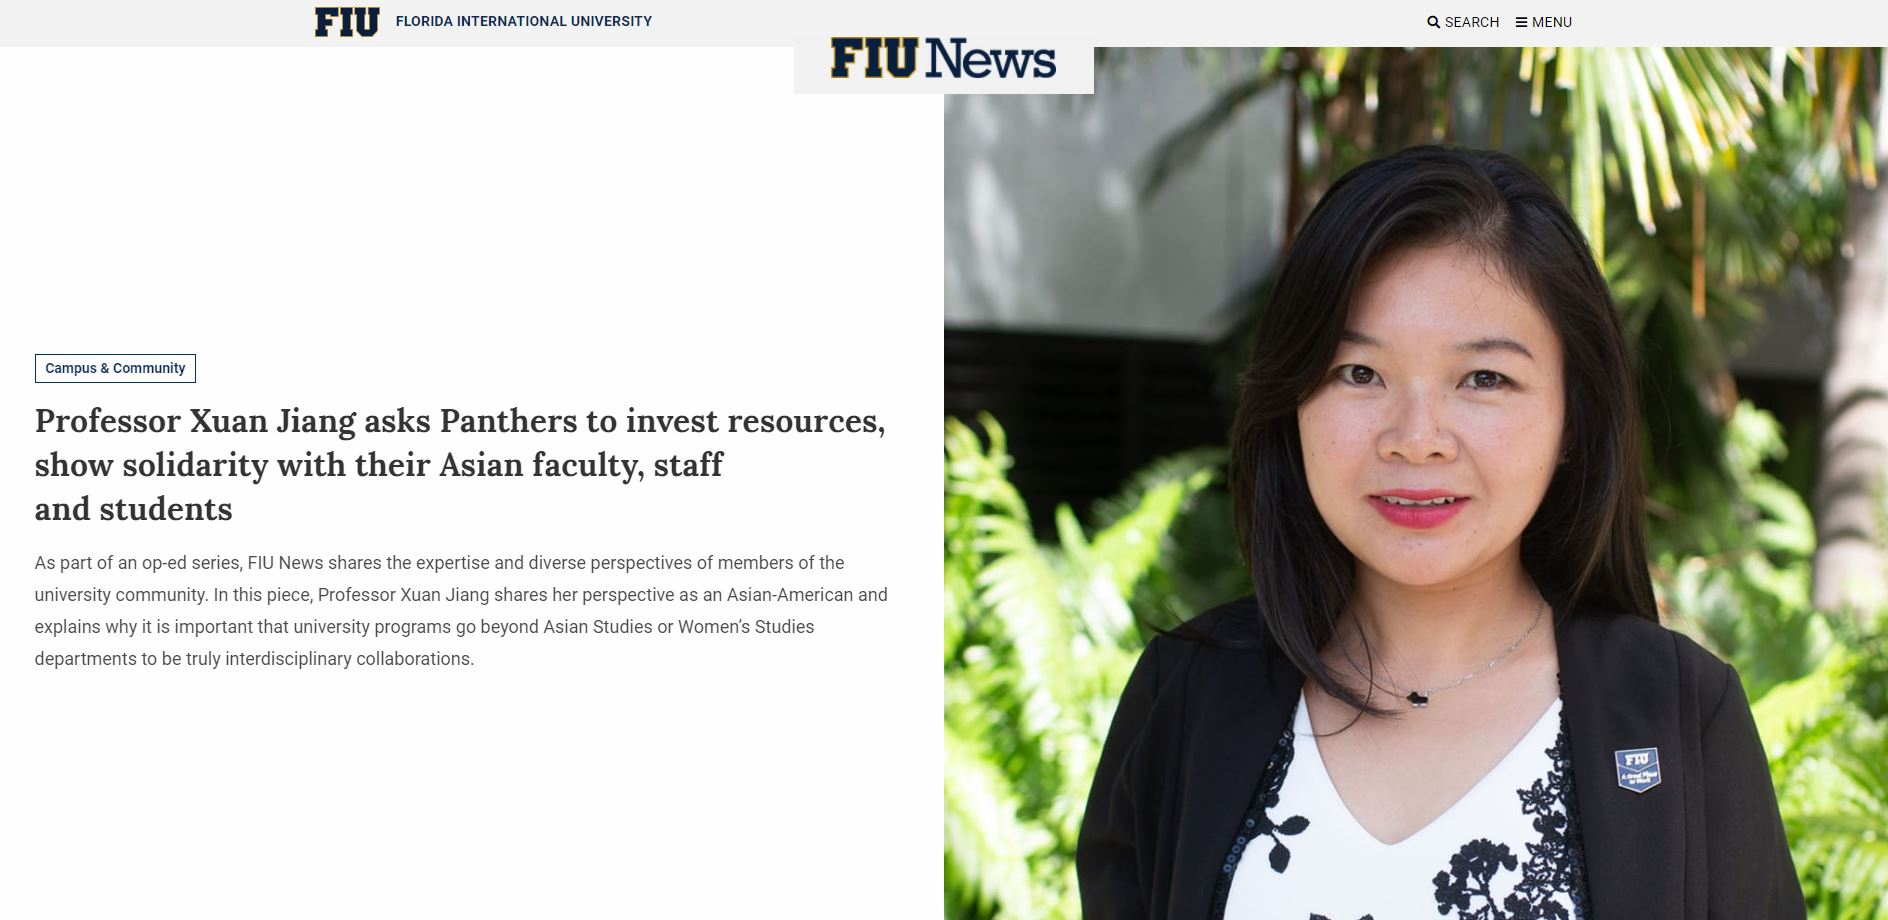 Professor Xuan Jiang asks Panthers to invest resources, show solidarity with their Asian faculty, staff and students